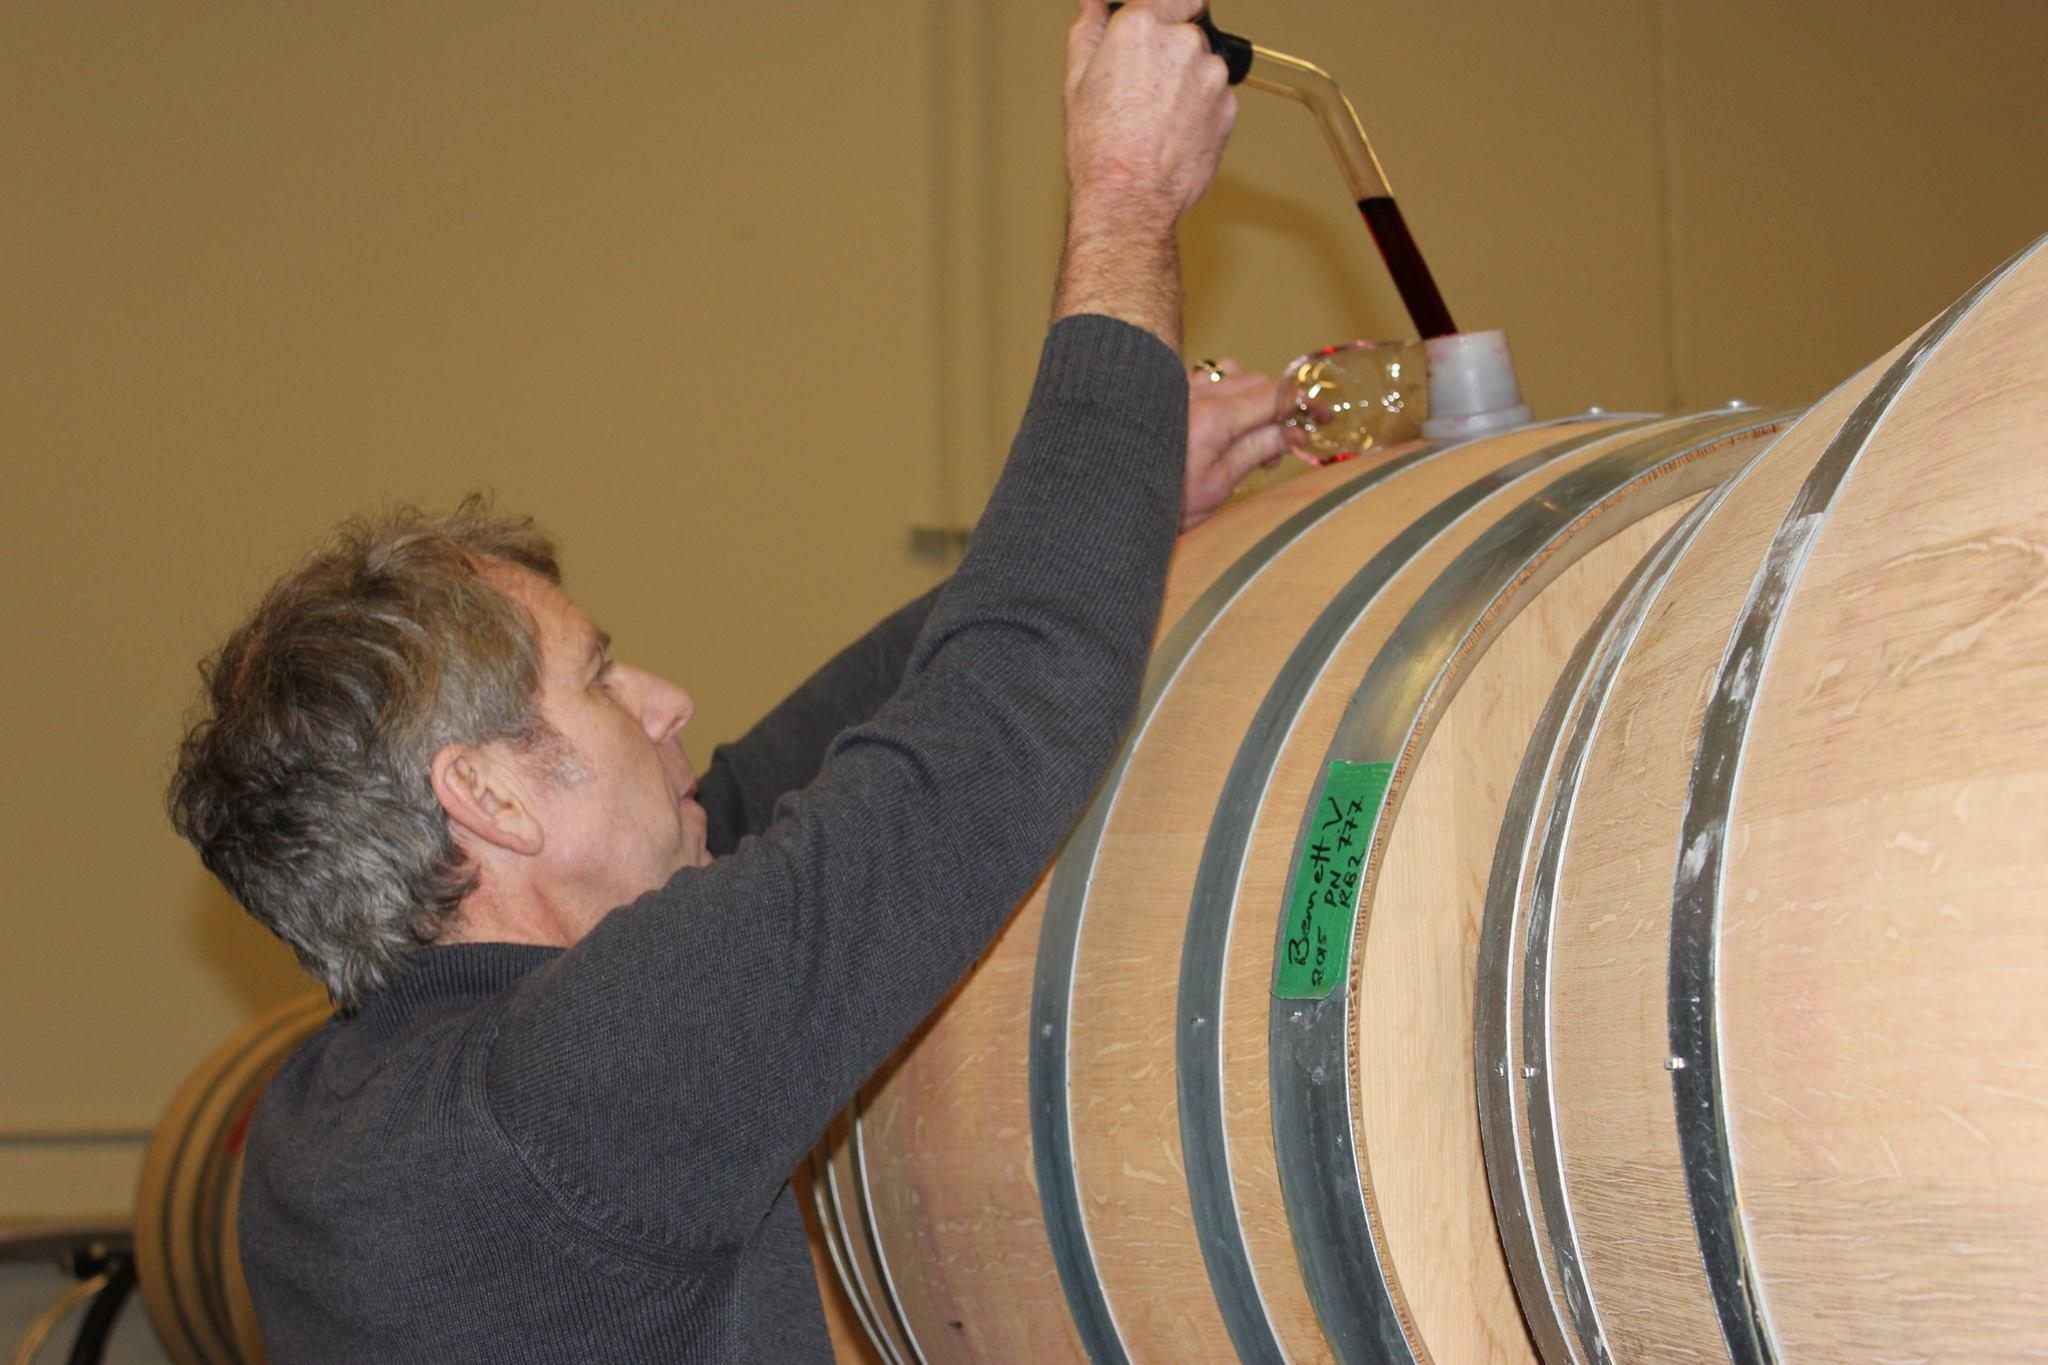 Our Pinot Noirs are aged in carefully selected French oak barrels